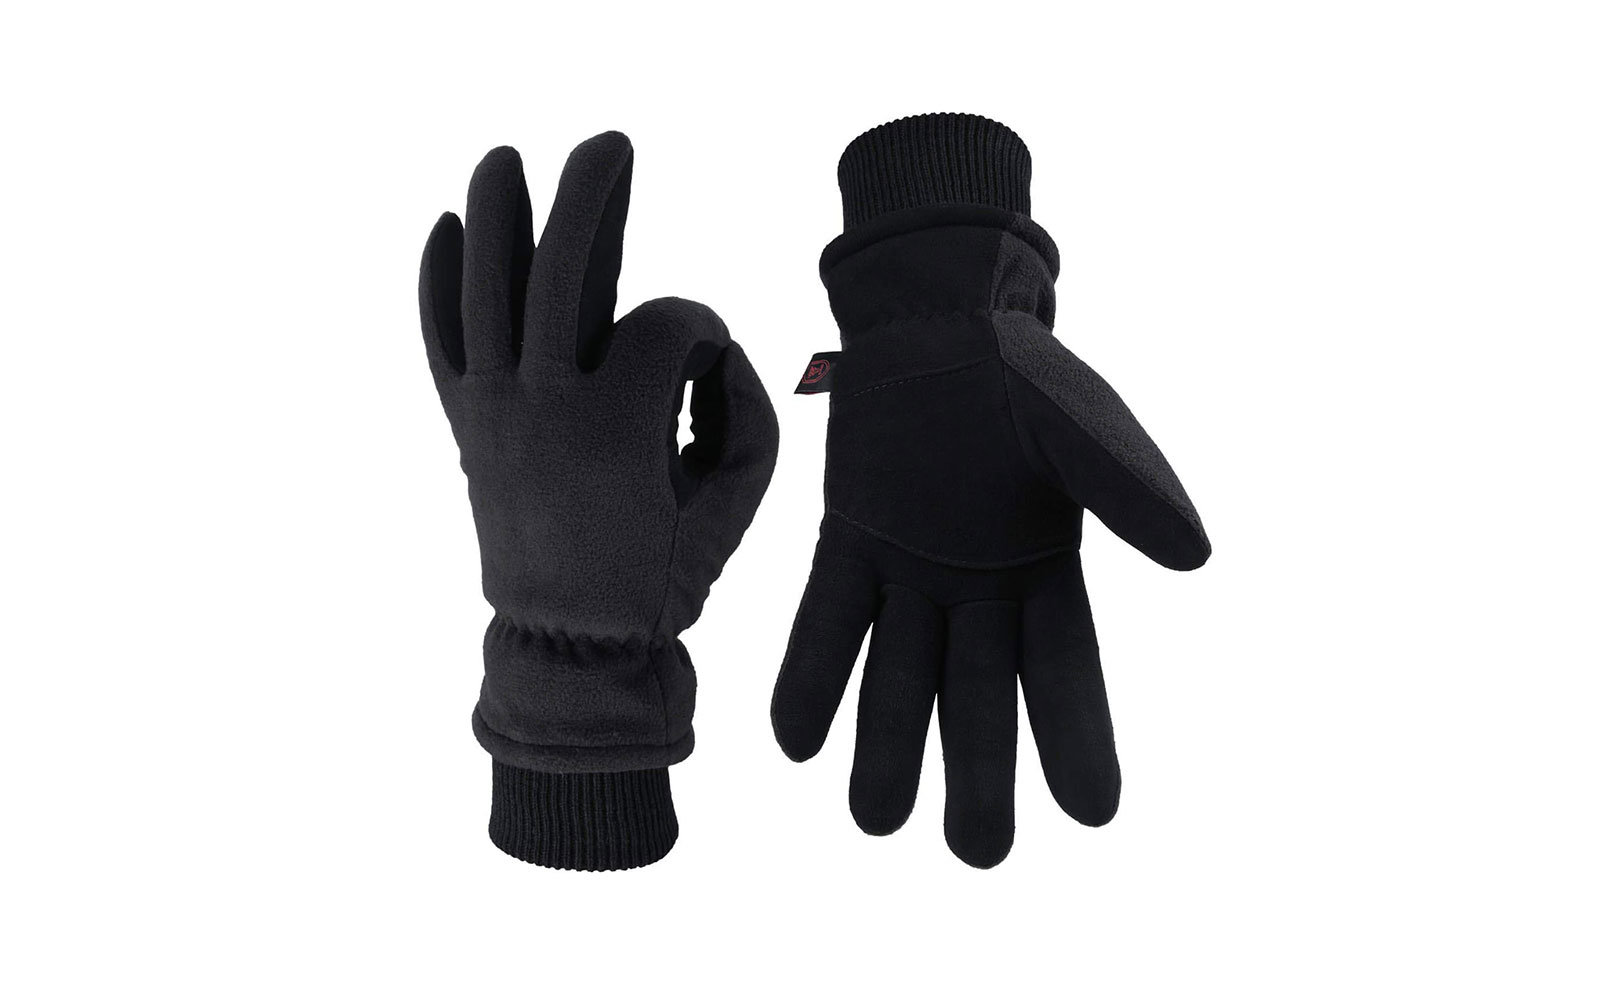 OZero insulated winter gloves